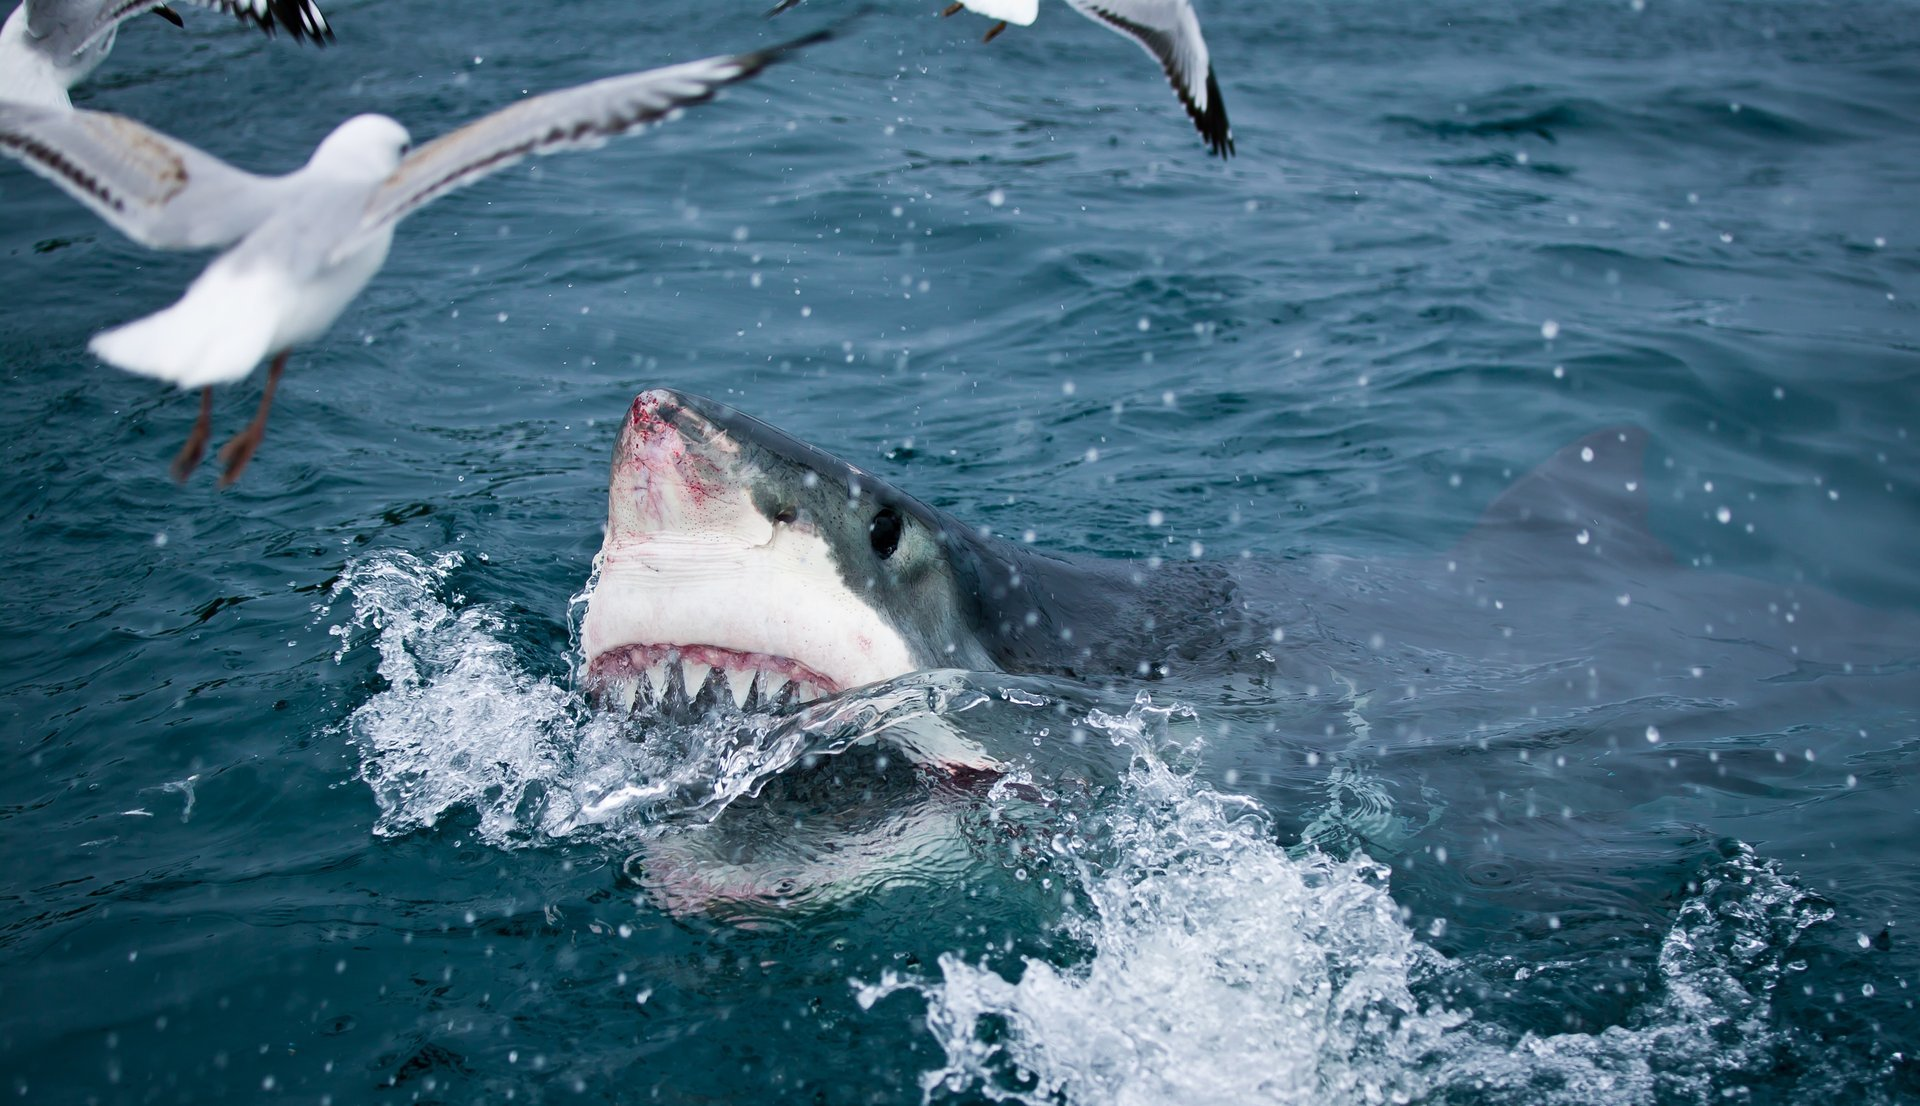 Great White Shark Cage Diving in New Zealand 2019 - Best Time